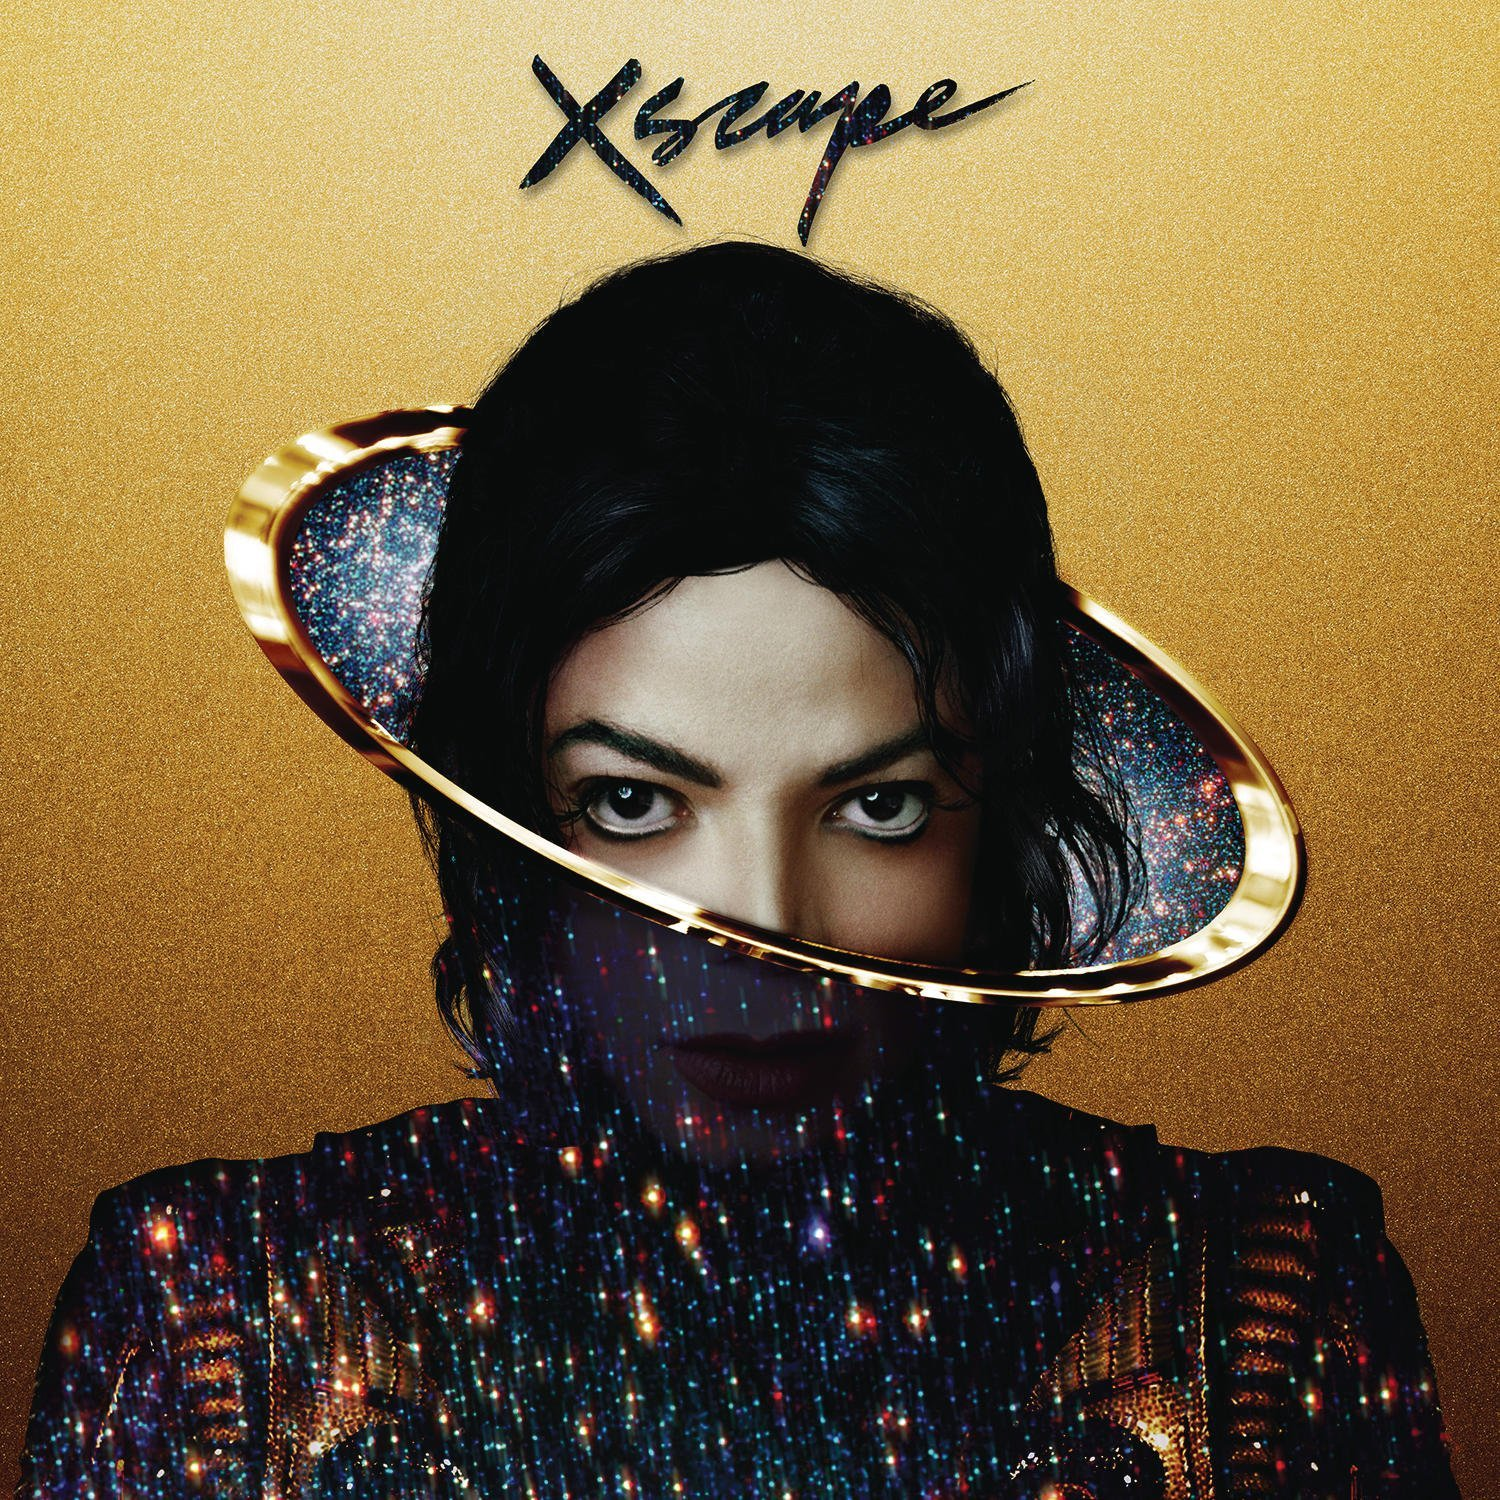 https://i1.wp.com/hiphop-n-more.com/wp-content/uploads/2014/03/xscape-deluxe.jpg